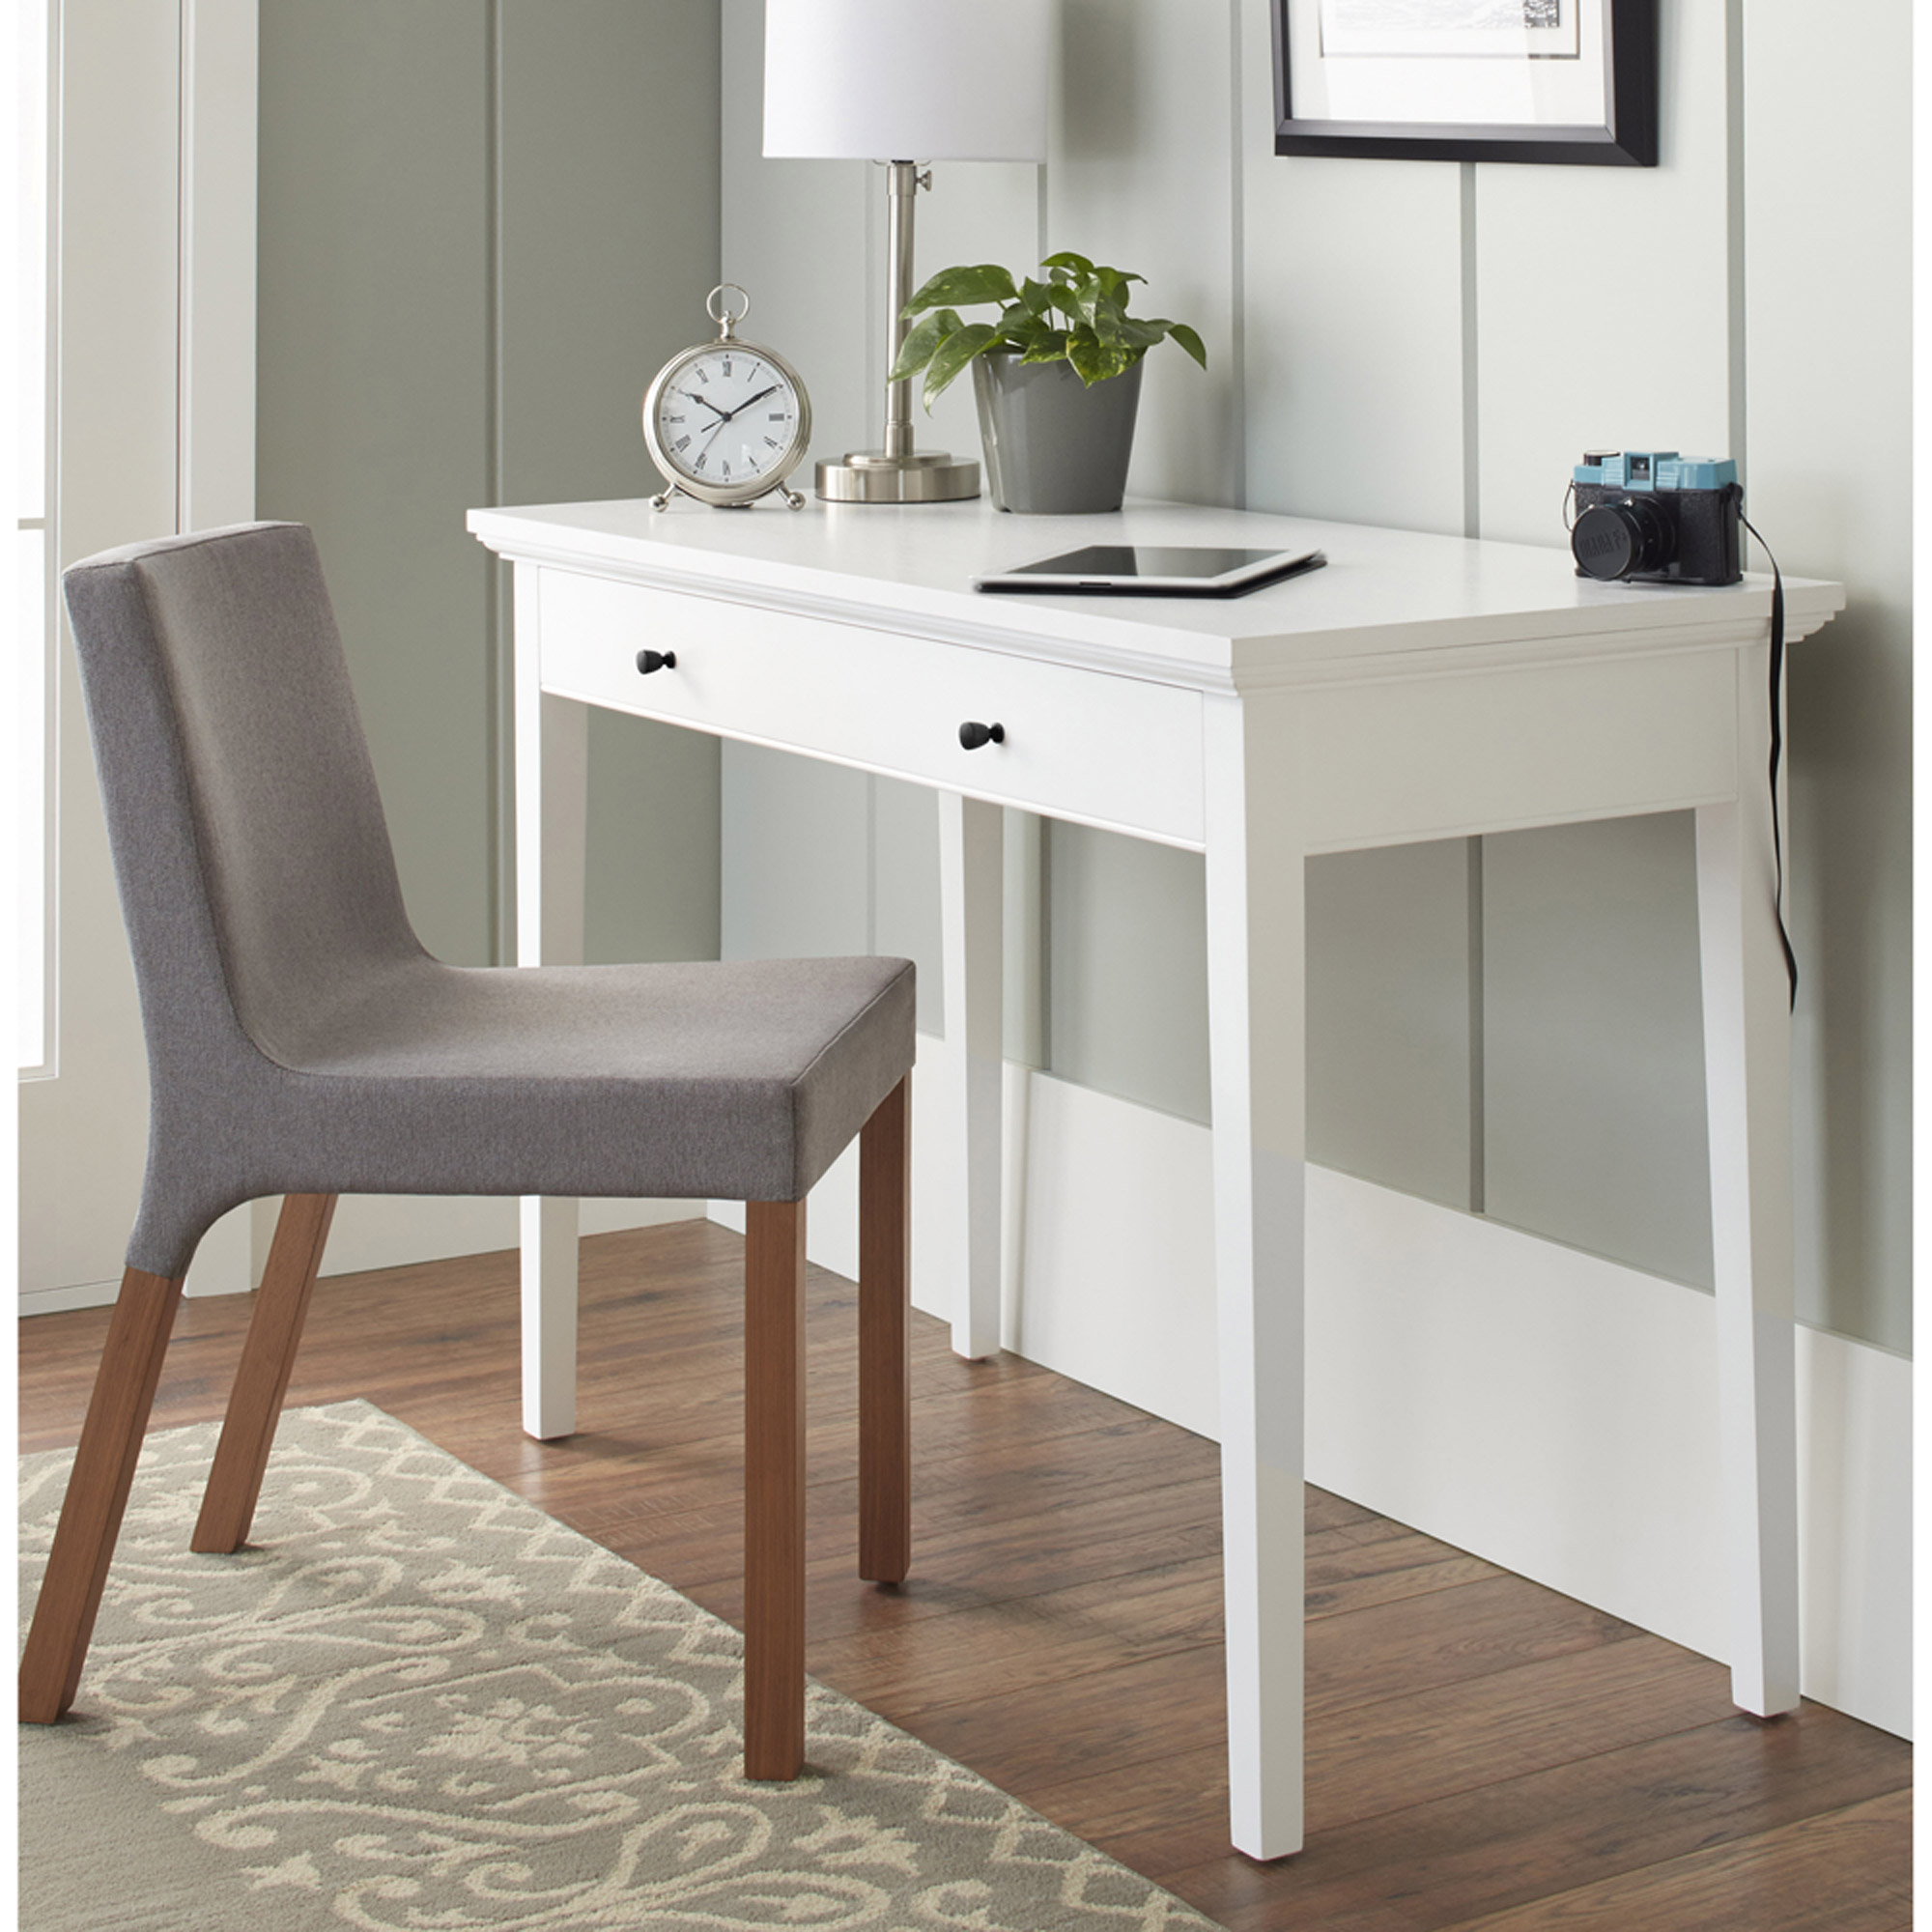 10 Spring Street Burlington Collection Desk, Multiple Colors